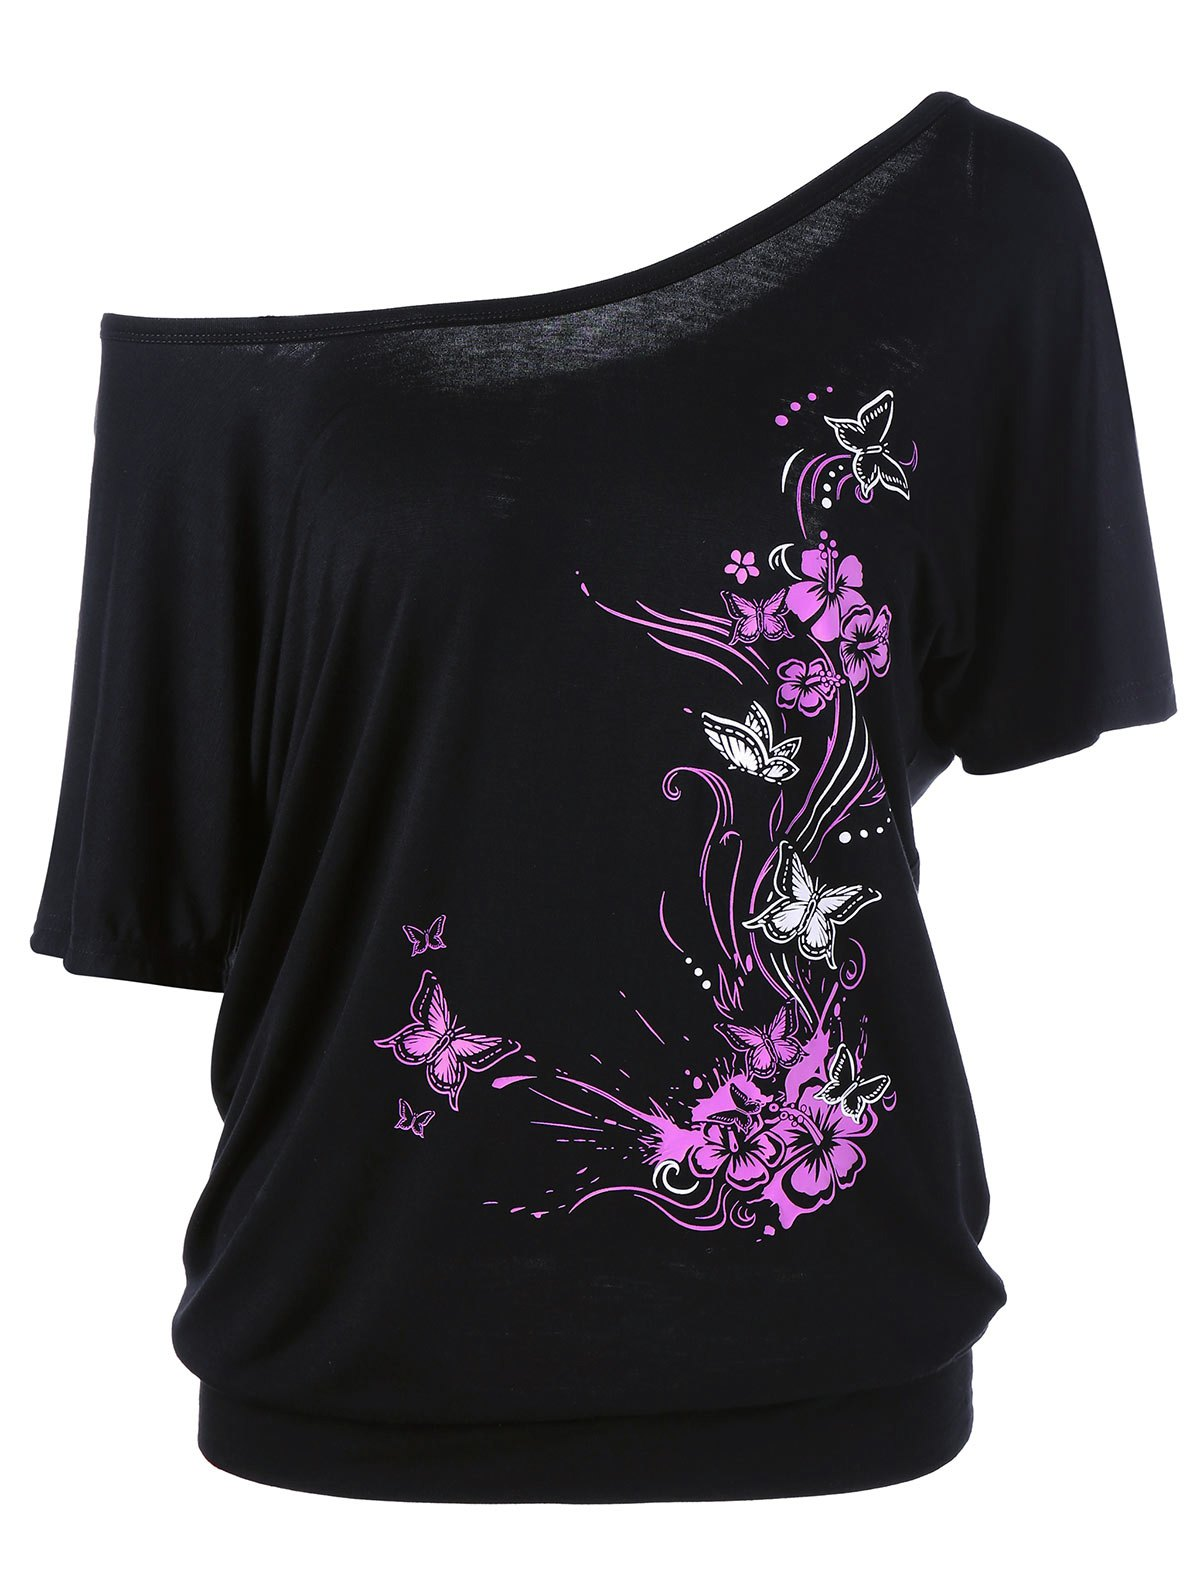 Black t shirt collar -  Butterfly And Floral Skew Collar T Shirt Black Xl